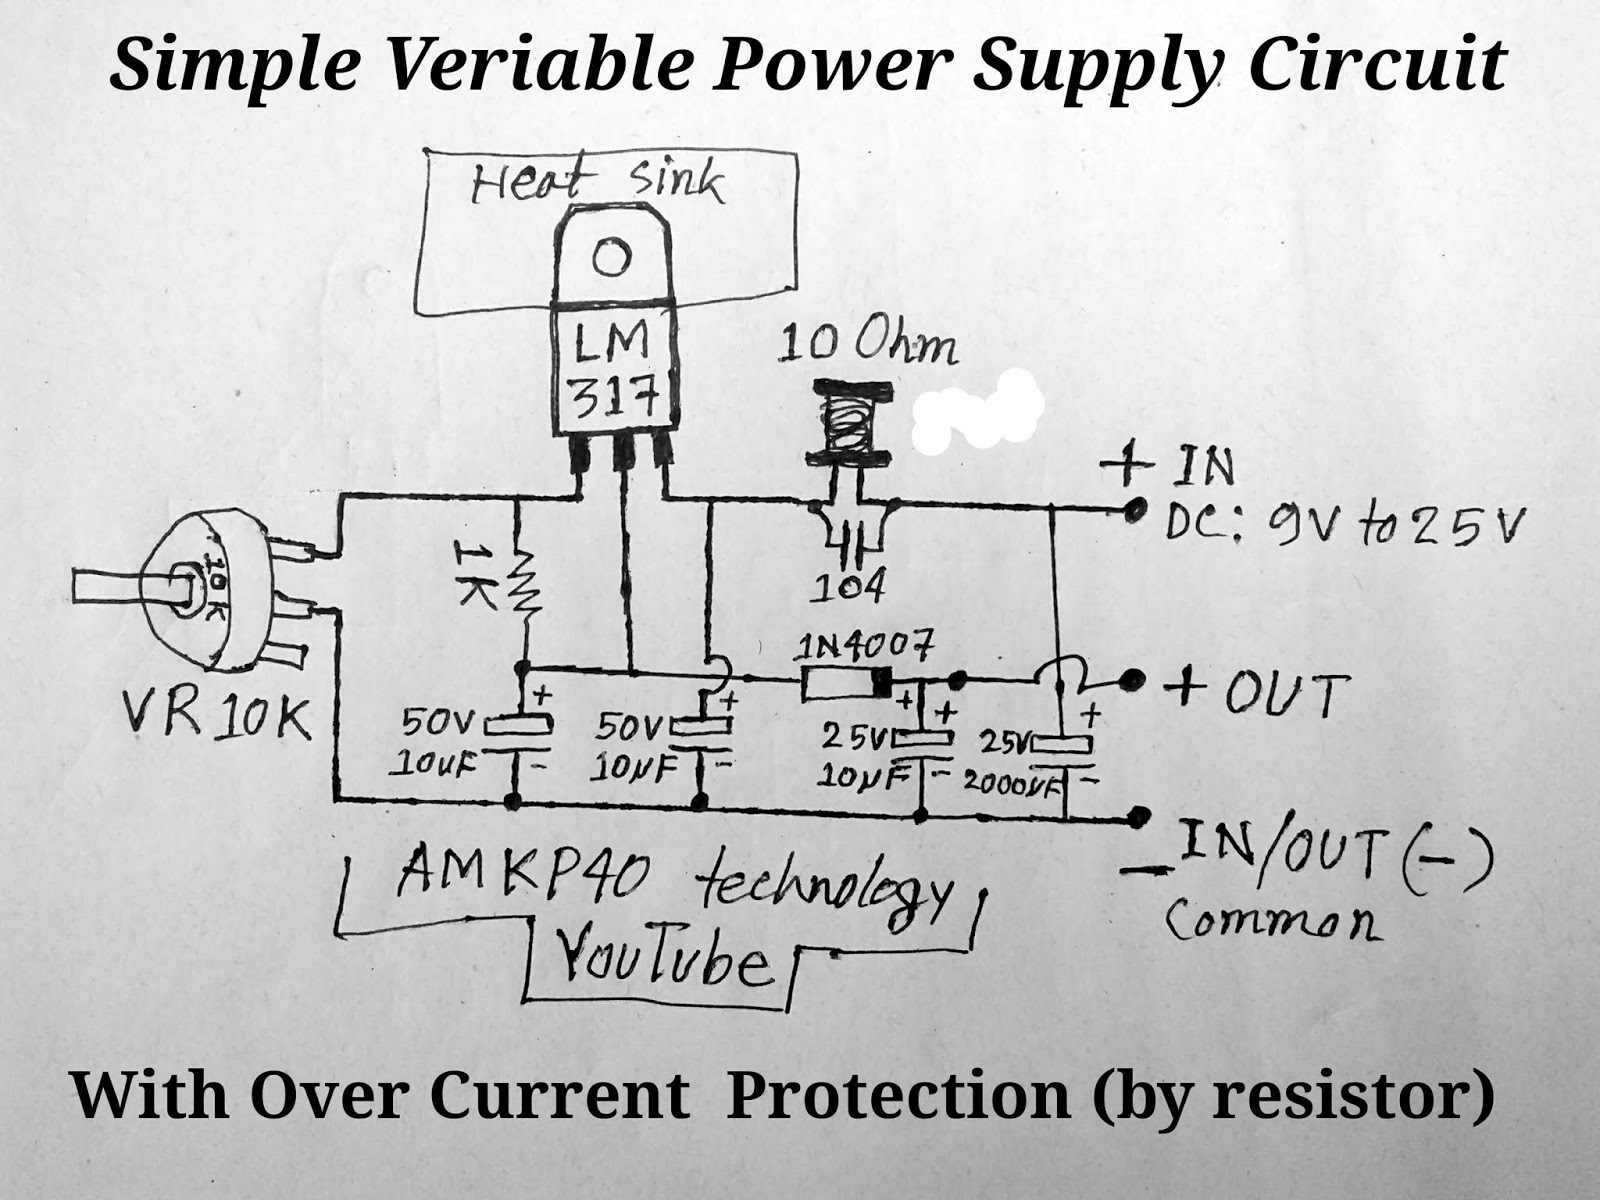 Design Lm317 Constant Current Source Circuits